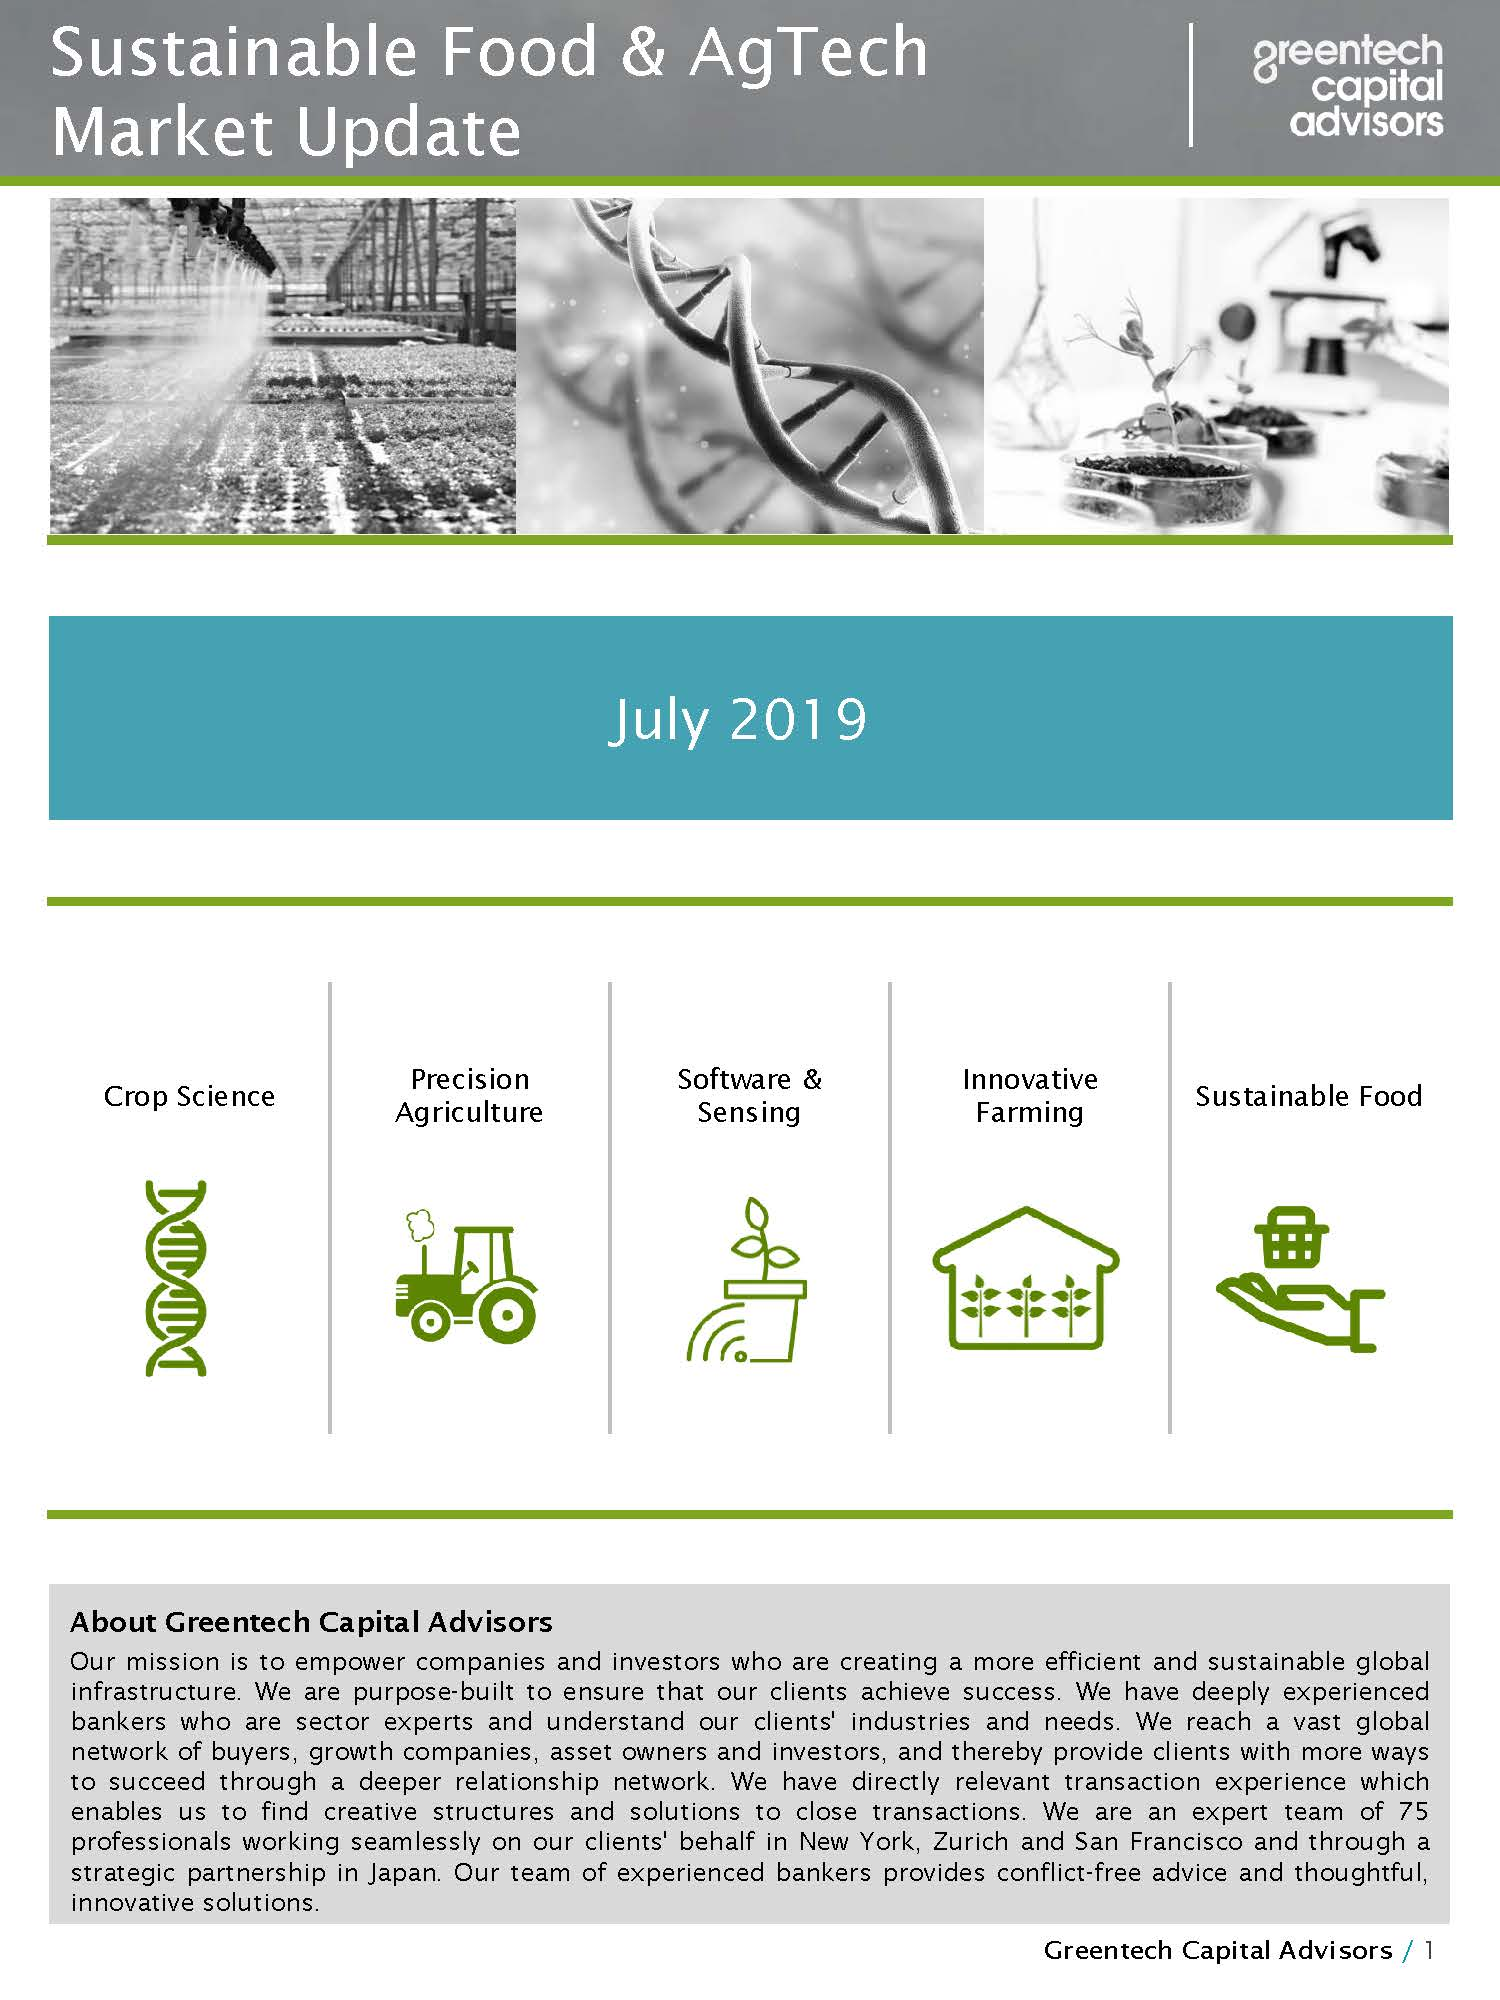 Sustainable Food & AgTech Market Update Newsletter - July 2019